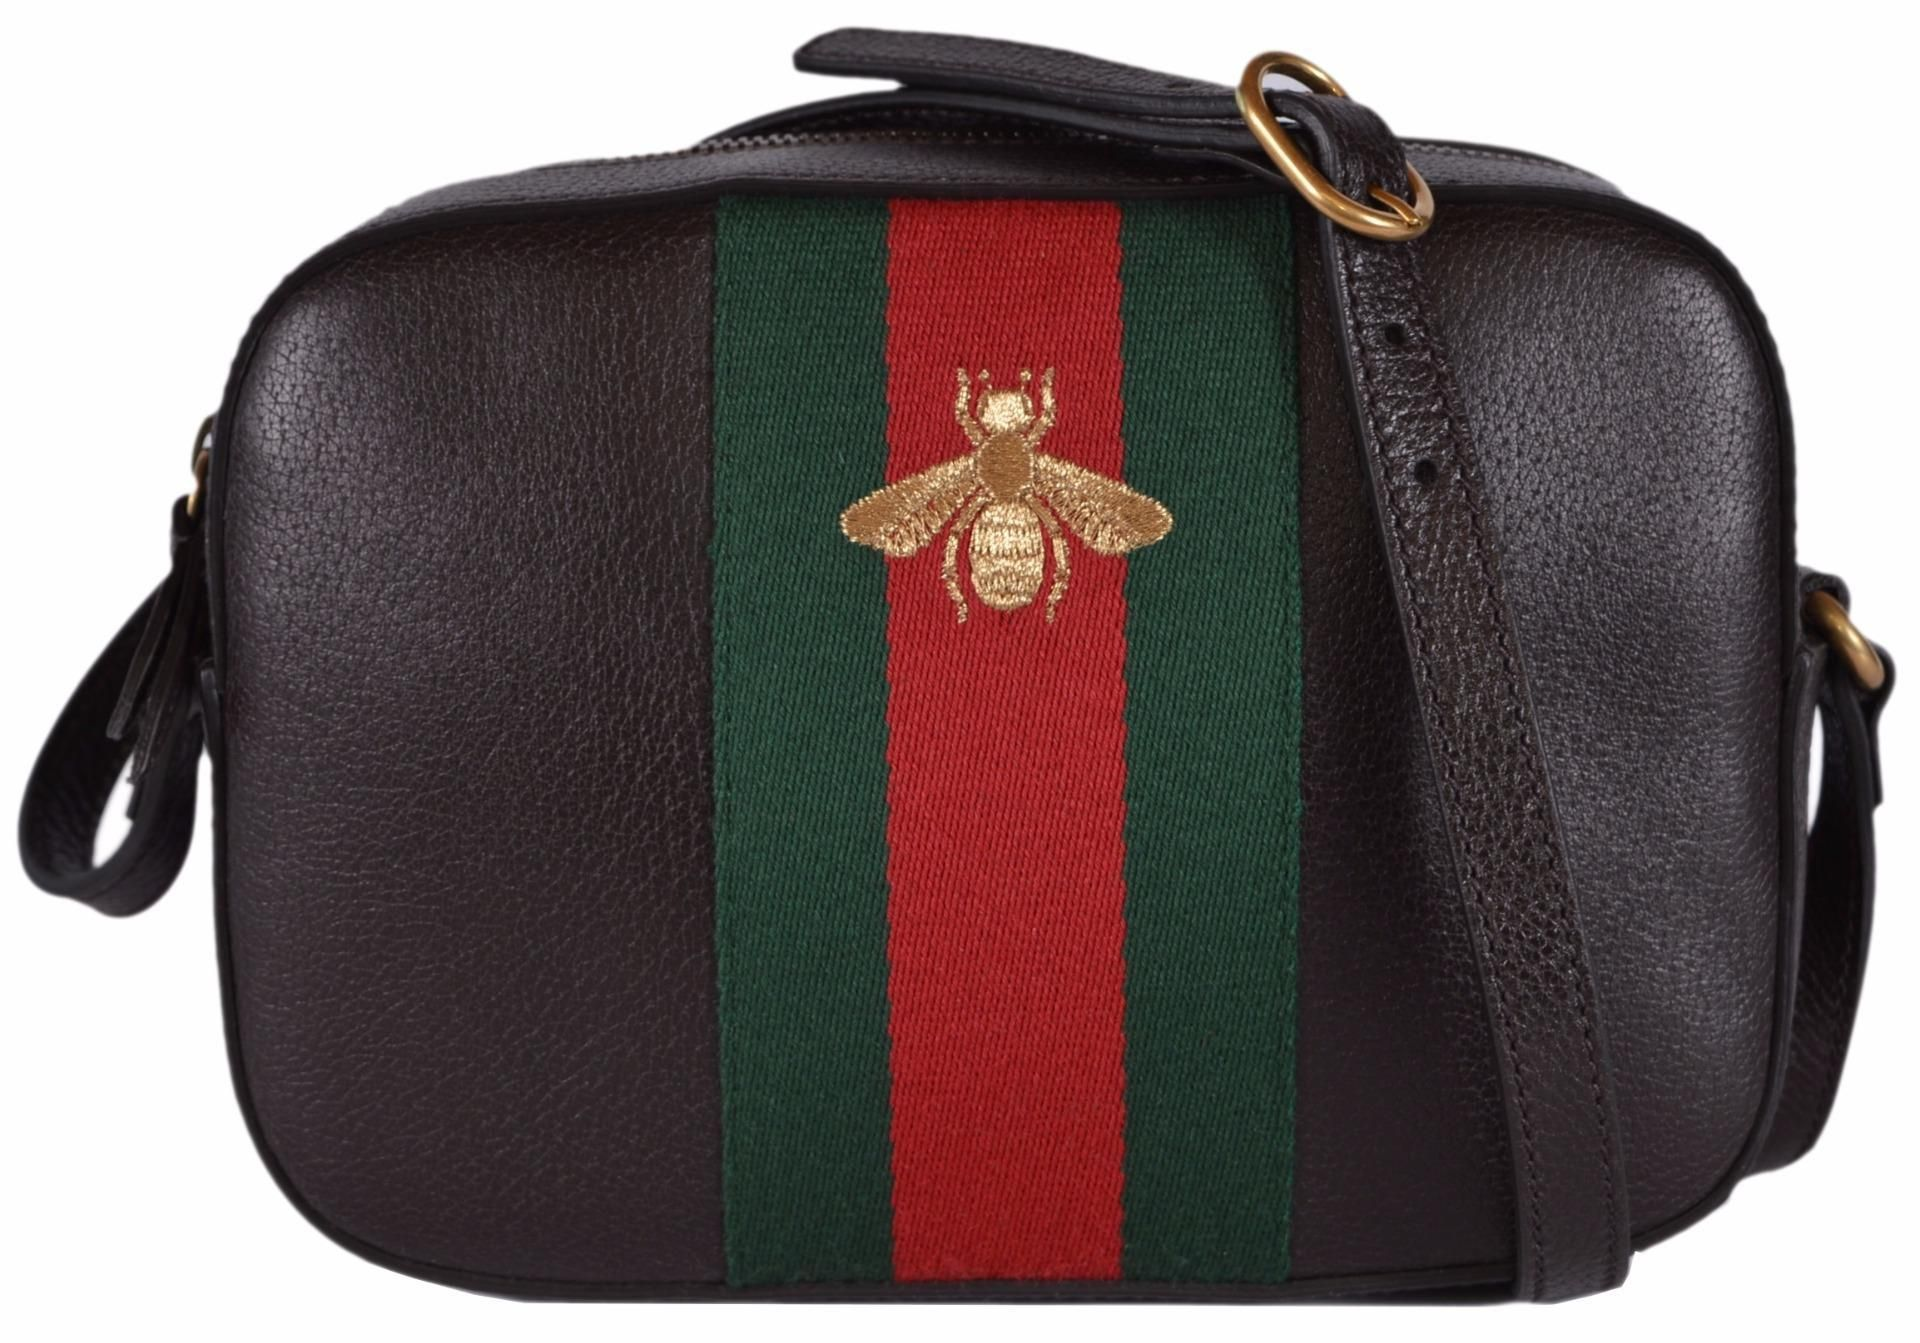 87655b1fbd7 Gucci New Women s 412008 Leather Red Green Web Bee Brown Cross Body Bag.  Get the